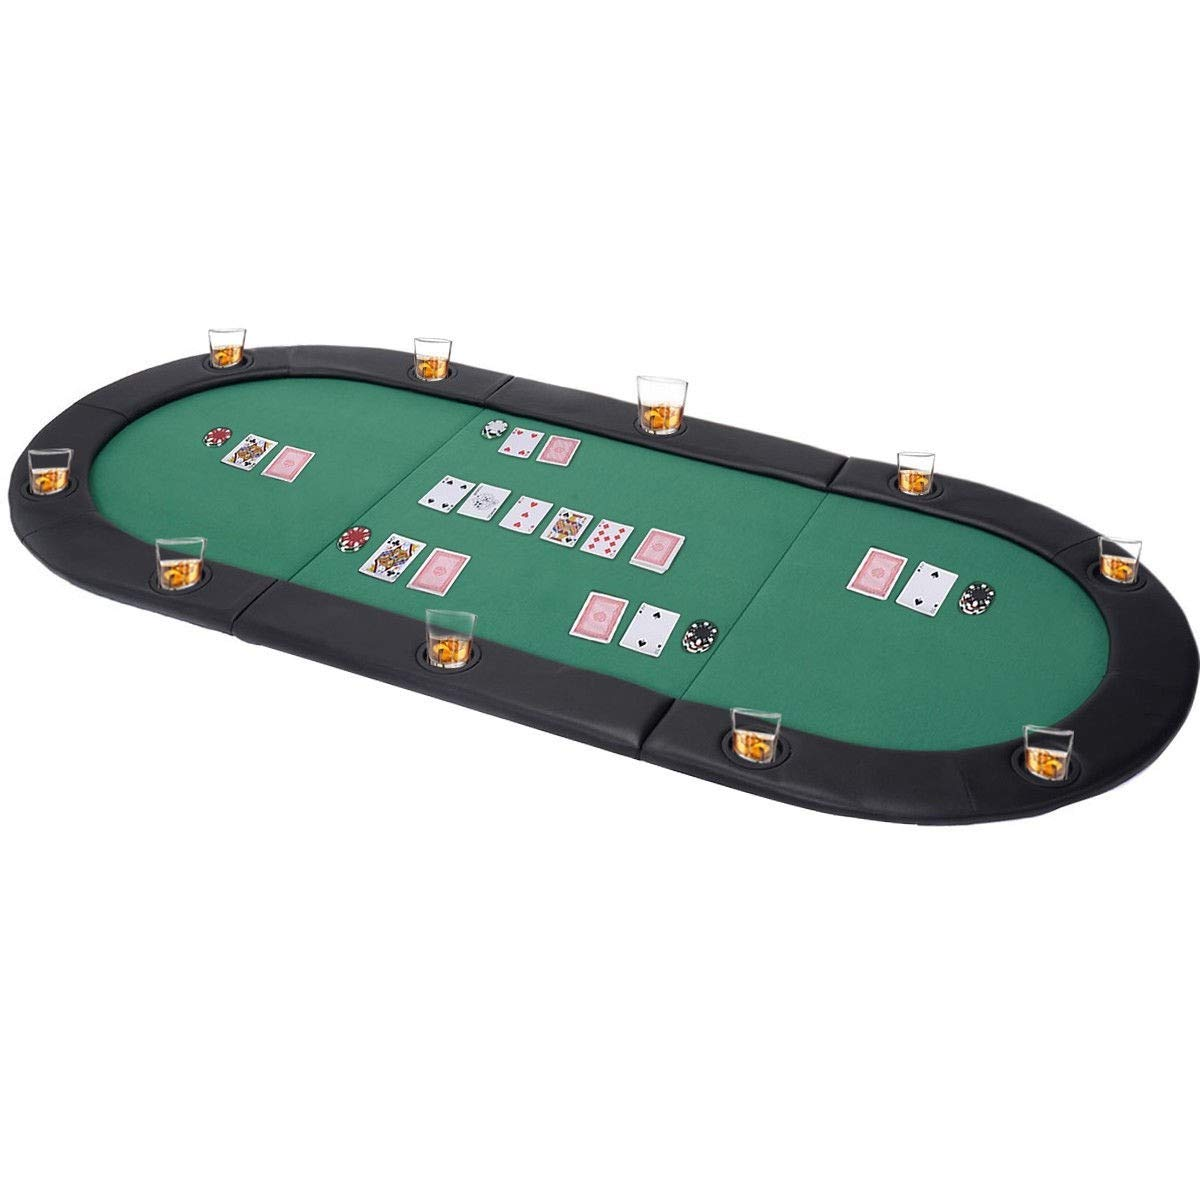 MRT SUPPLY 79'' x 36'' 8 Players Texas Holdem Foldable Poker Table Top with Ebook